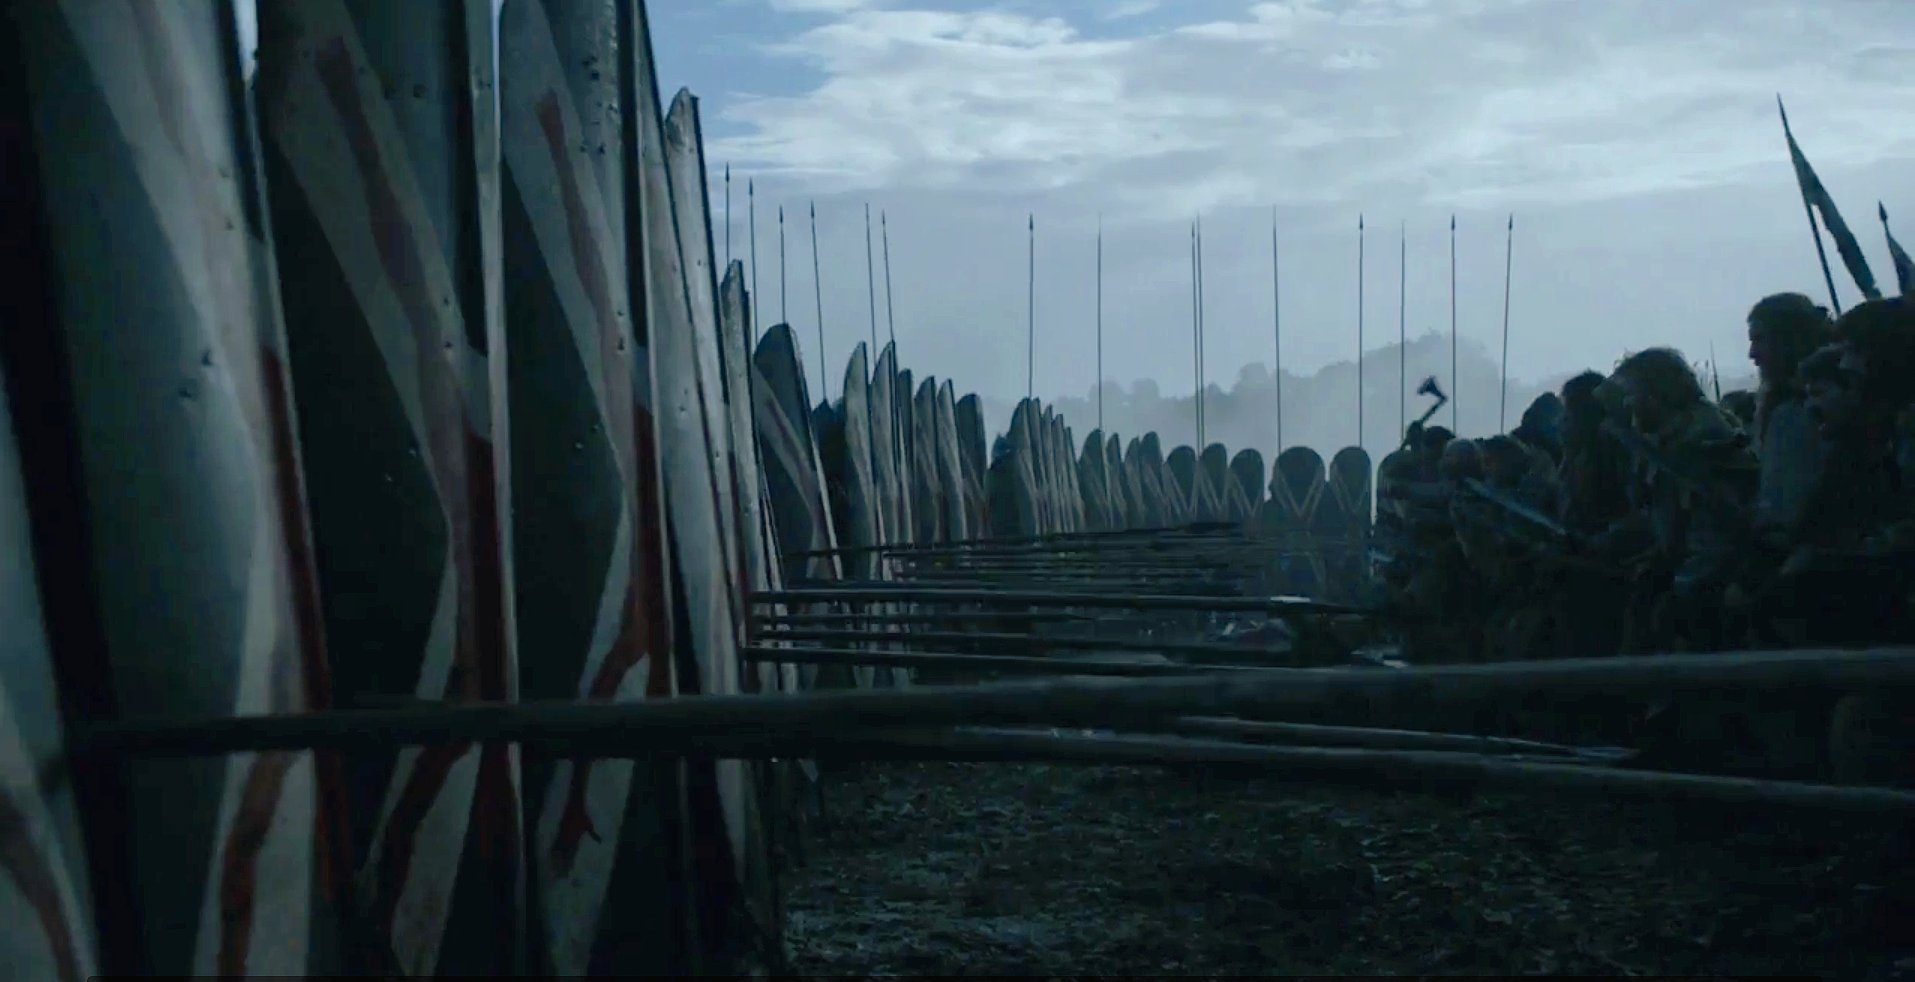 Game-Of-Thrones-season-6-episode-9-Battle-Of-The-Bastards-trailer-image.jpg